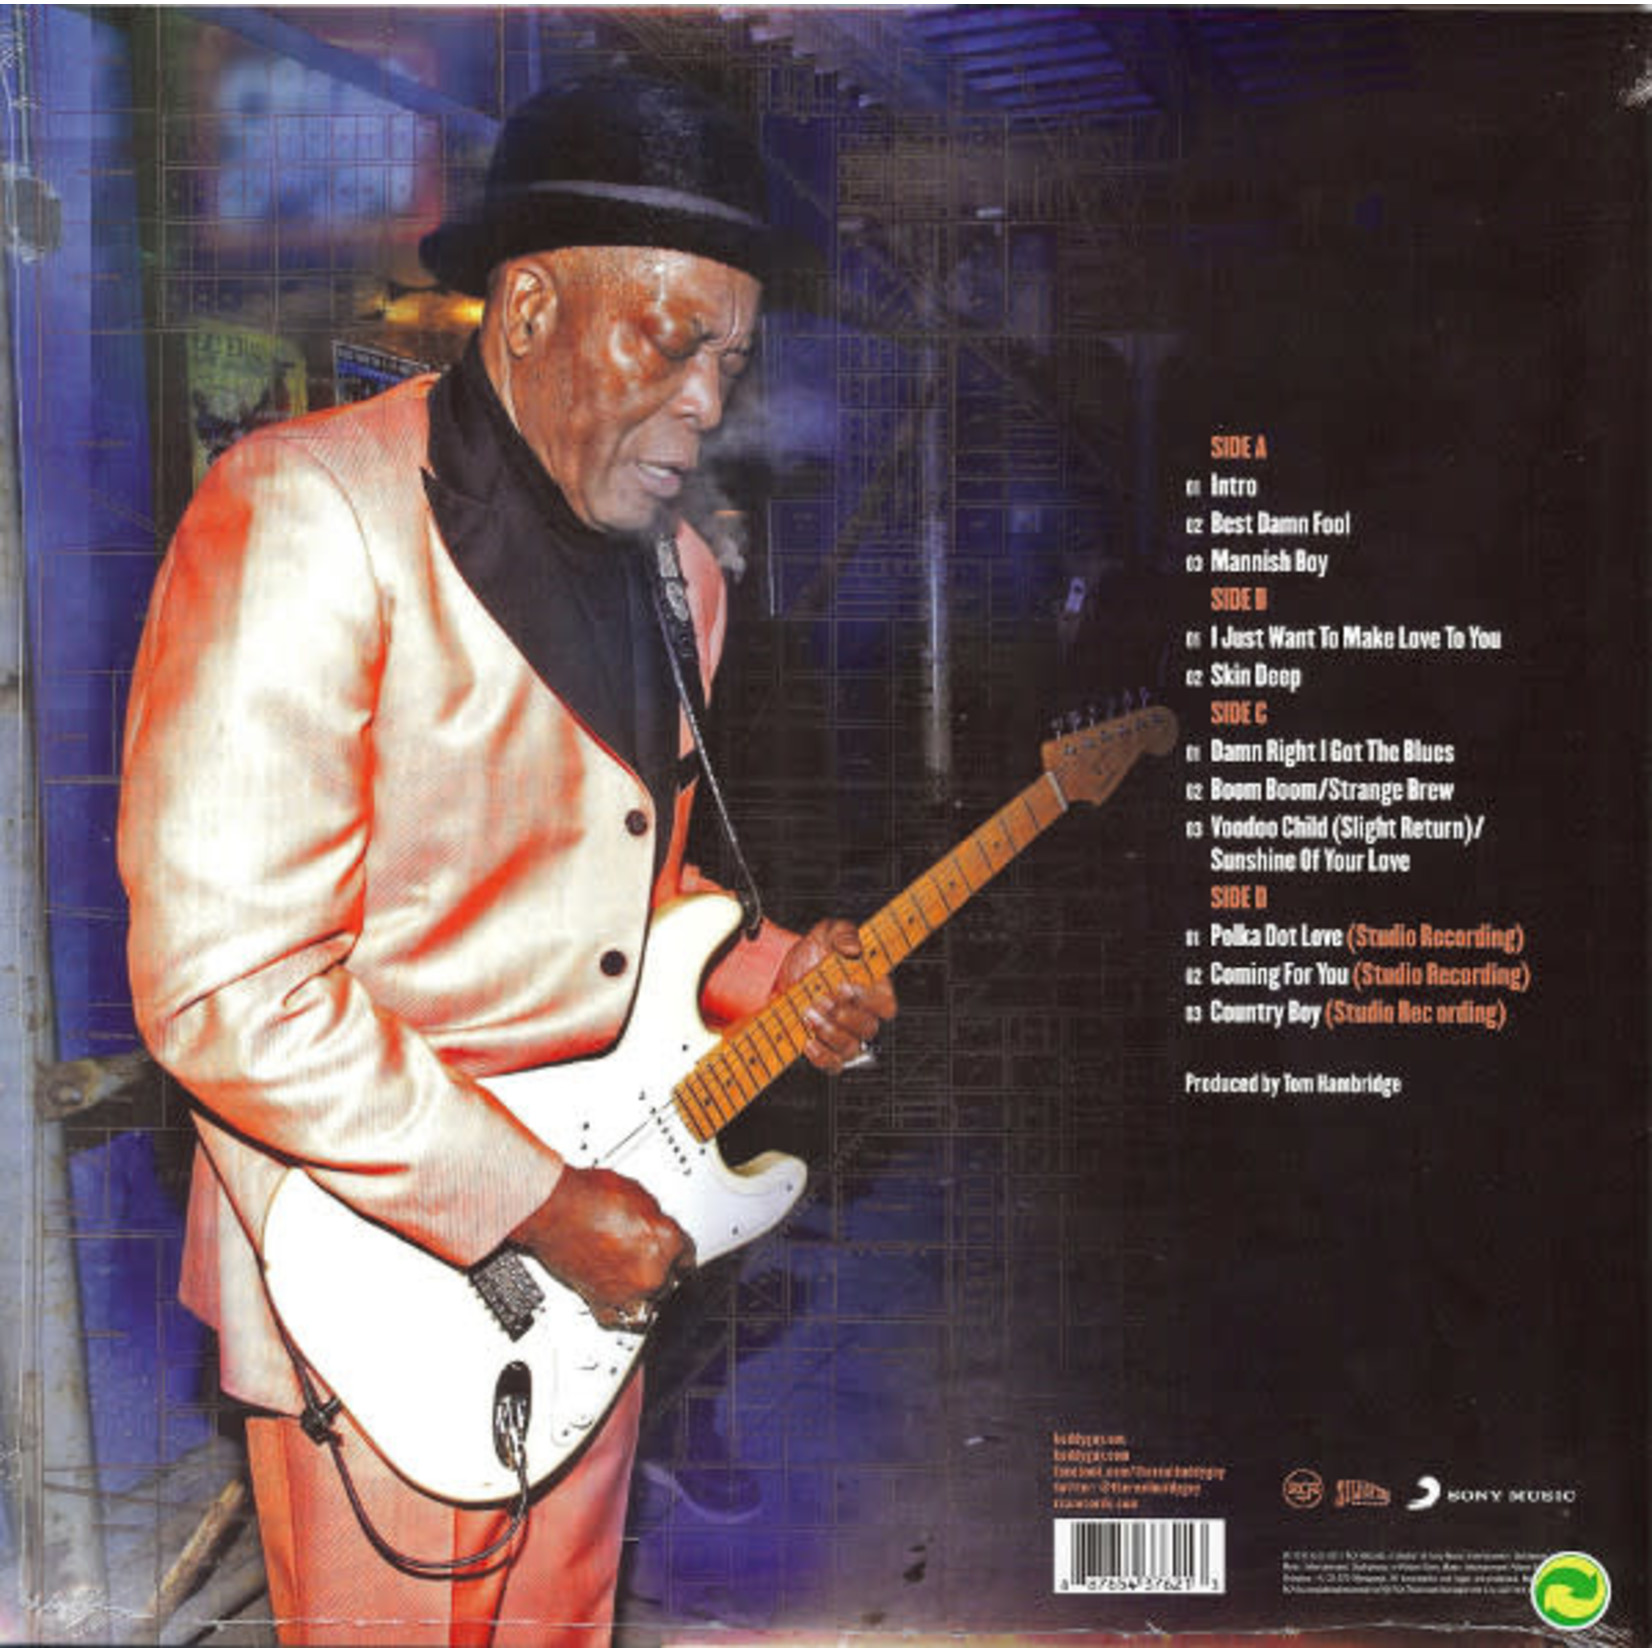 BUDDY GUY LIVE AT LEGENDS (LIMITED EDITION COLORED VINYL)